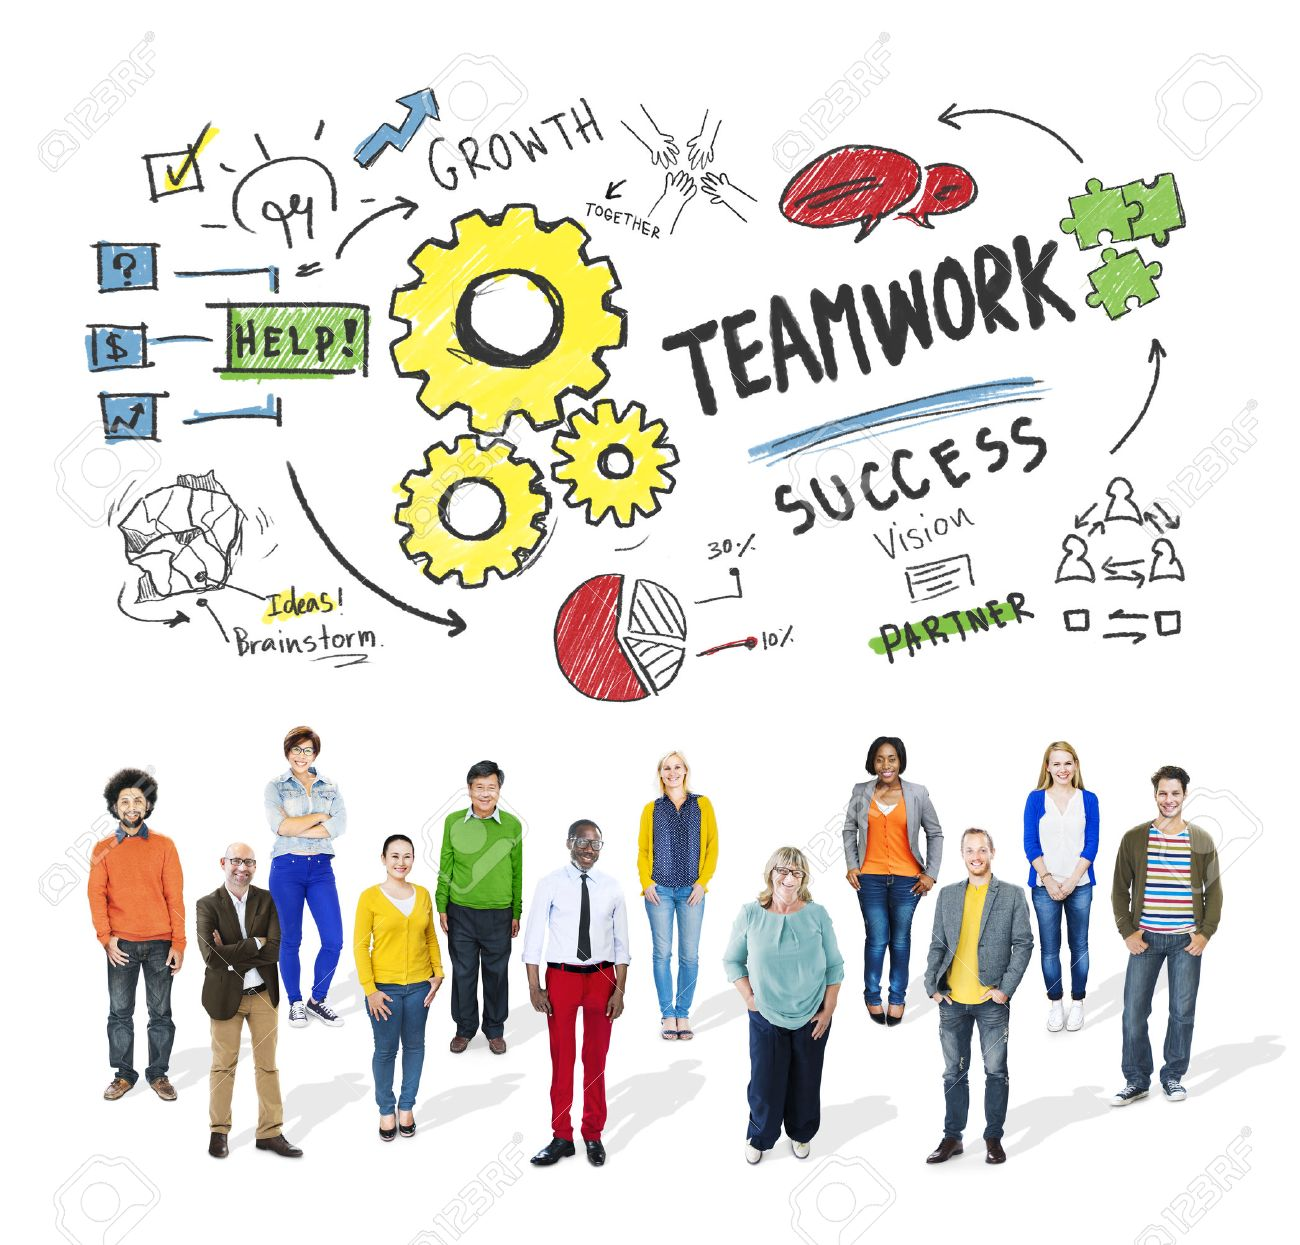 Stock Photo Teamwork Team Together Collaboration Diversity People Group Concept